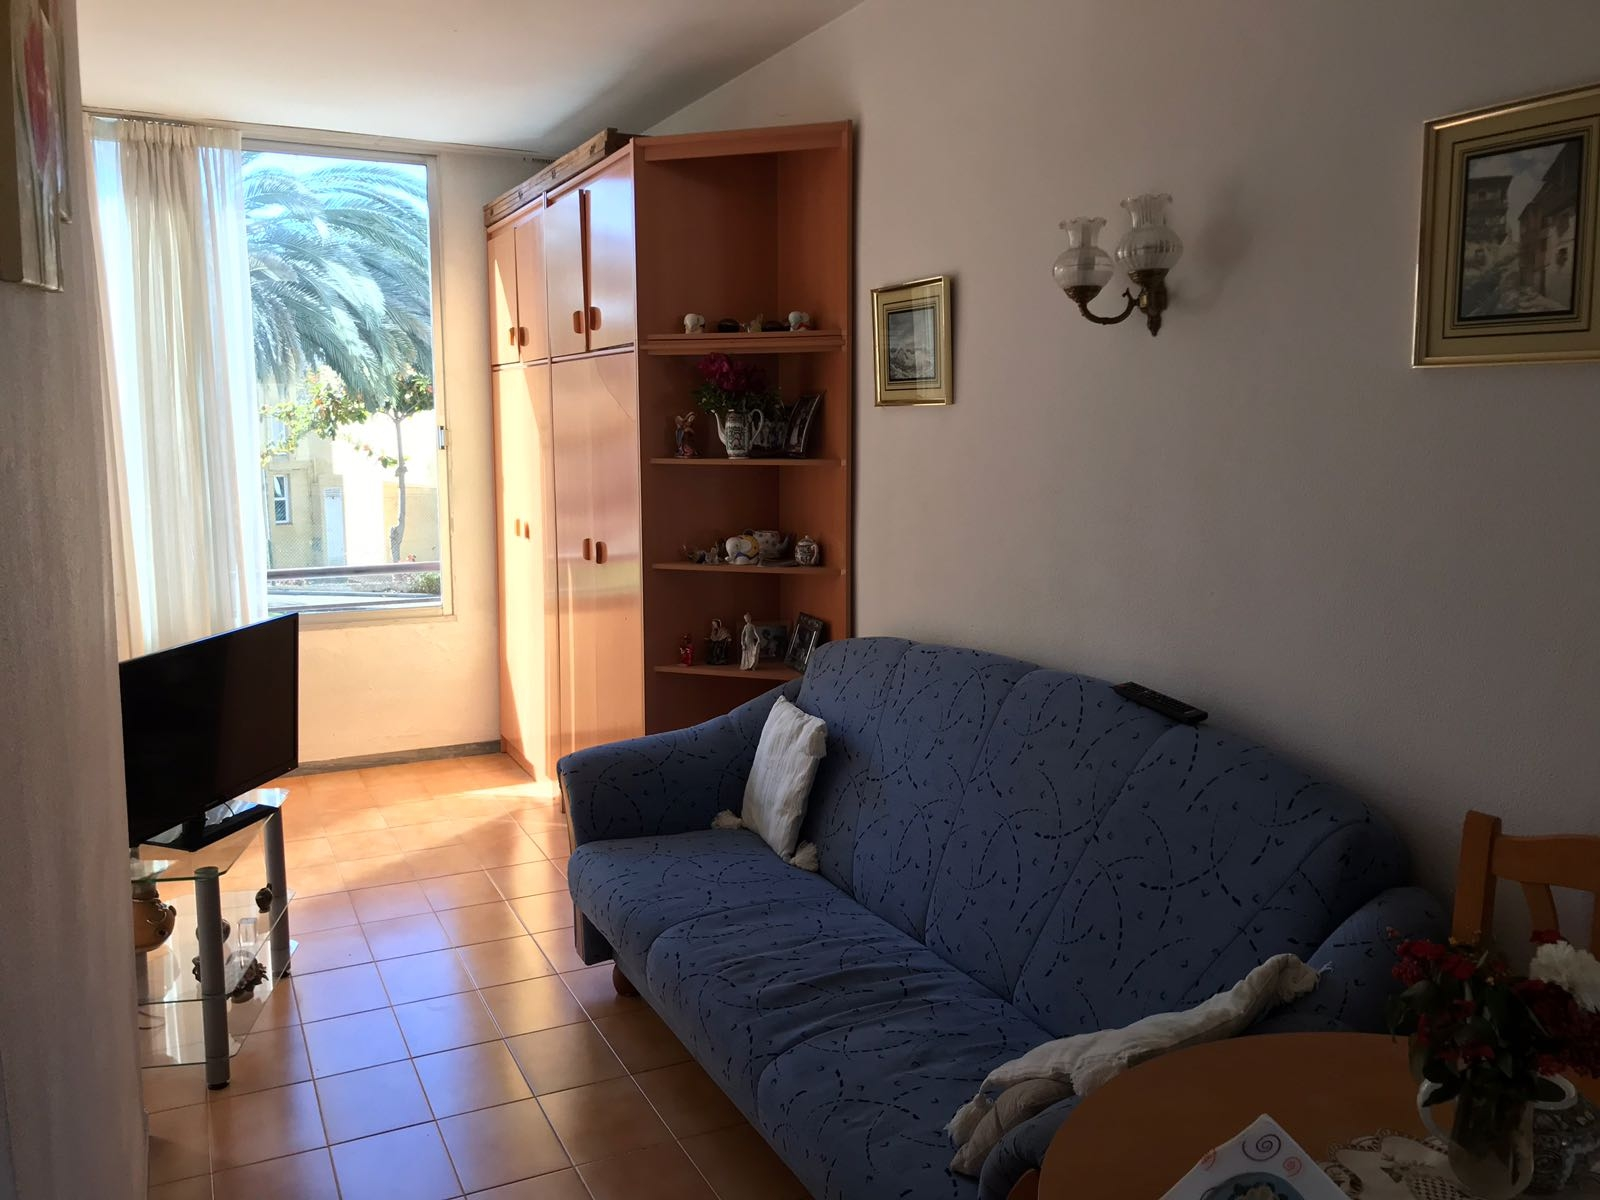 Properties for Sale in Tenerife, Canary Islands, Spain | SylkWayStar Real Estate. 1 Bedroom apartment Los Agaves. Image-22284